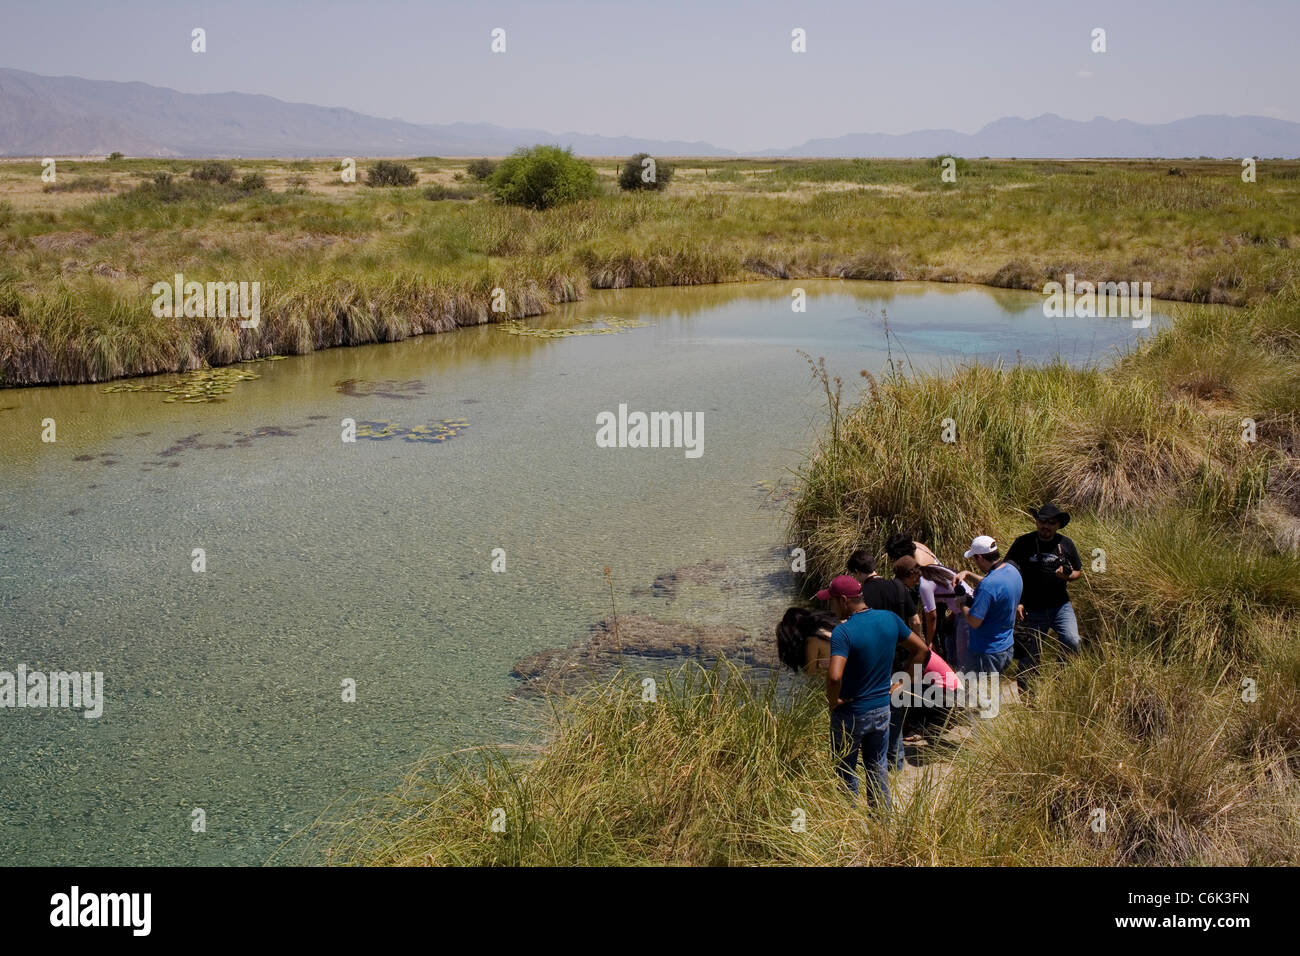 Tourists taking pictures at the Poza Azul in Cuartocienegas, Mexico. - Stock Image